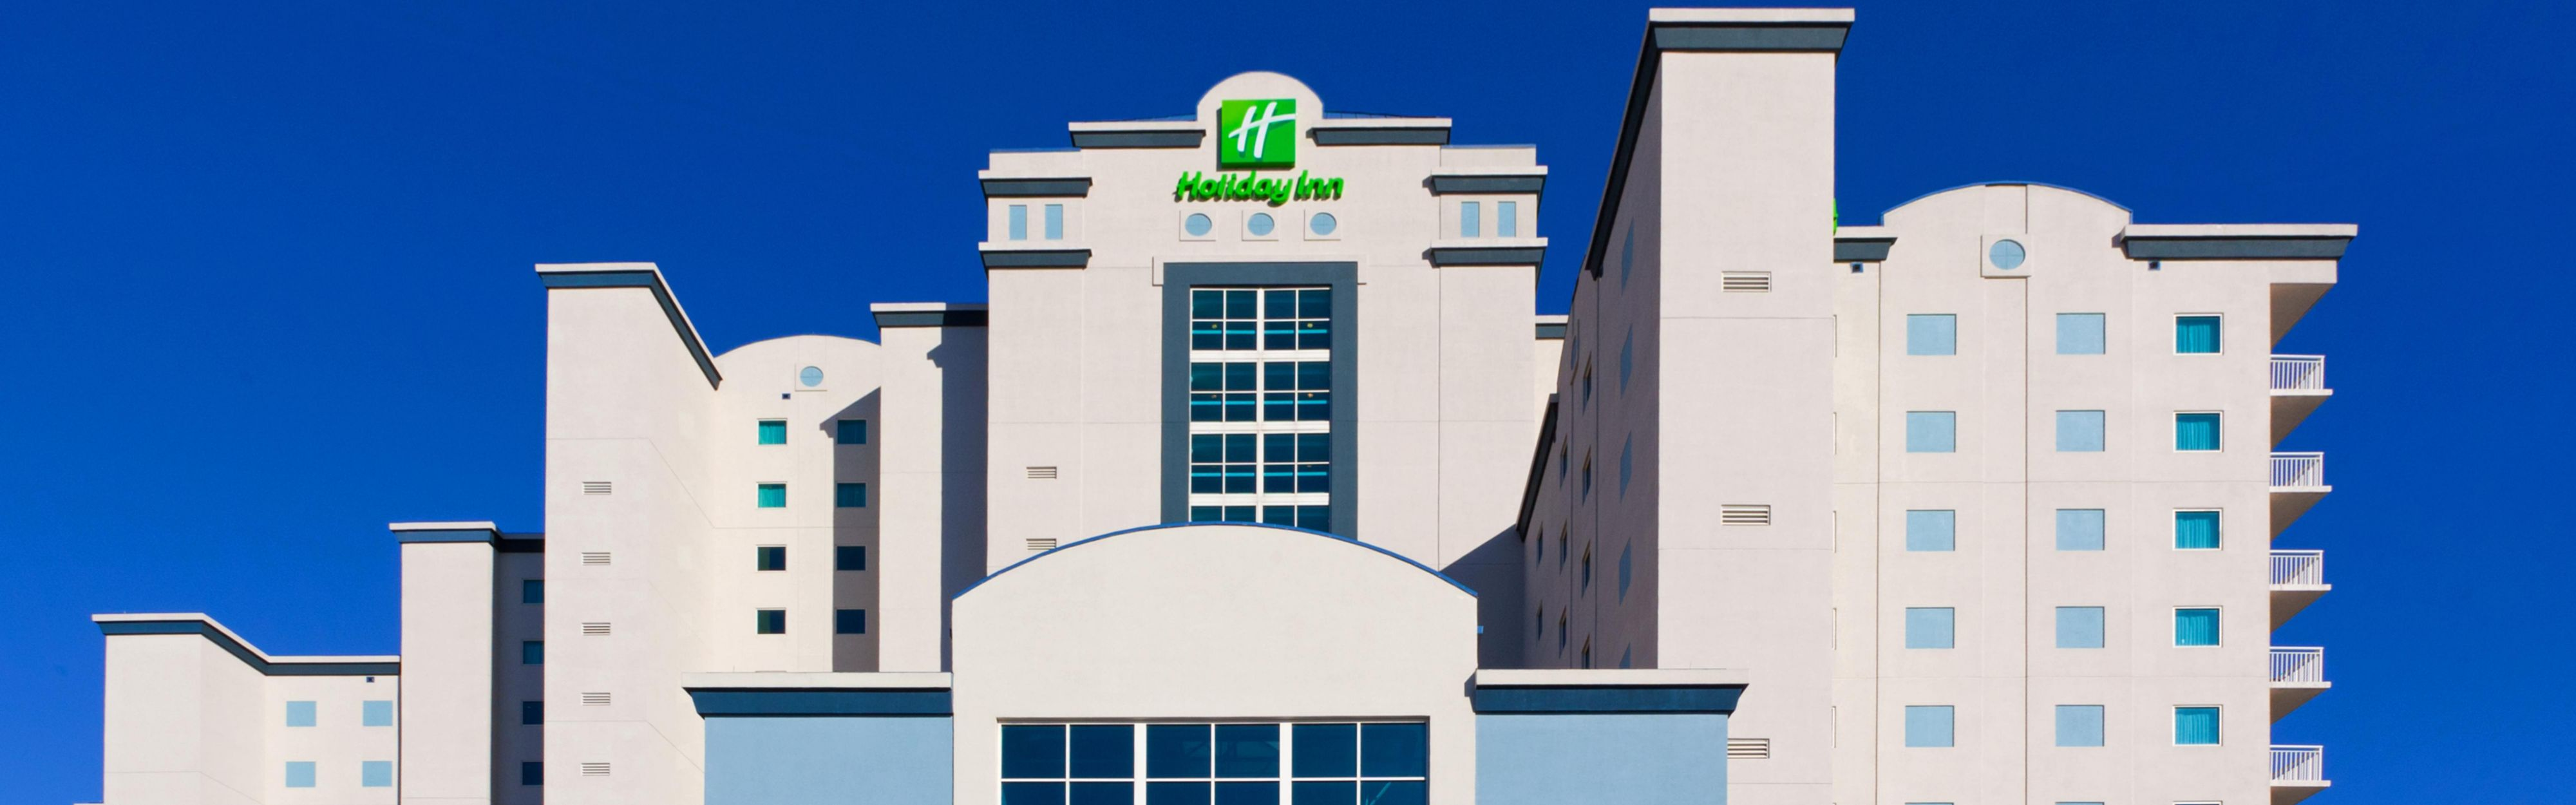 Hotel Exterior; Gaze Through The Windows And Enjoy The View Of The Bay.